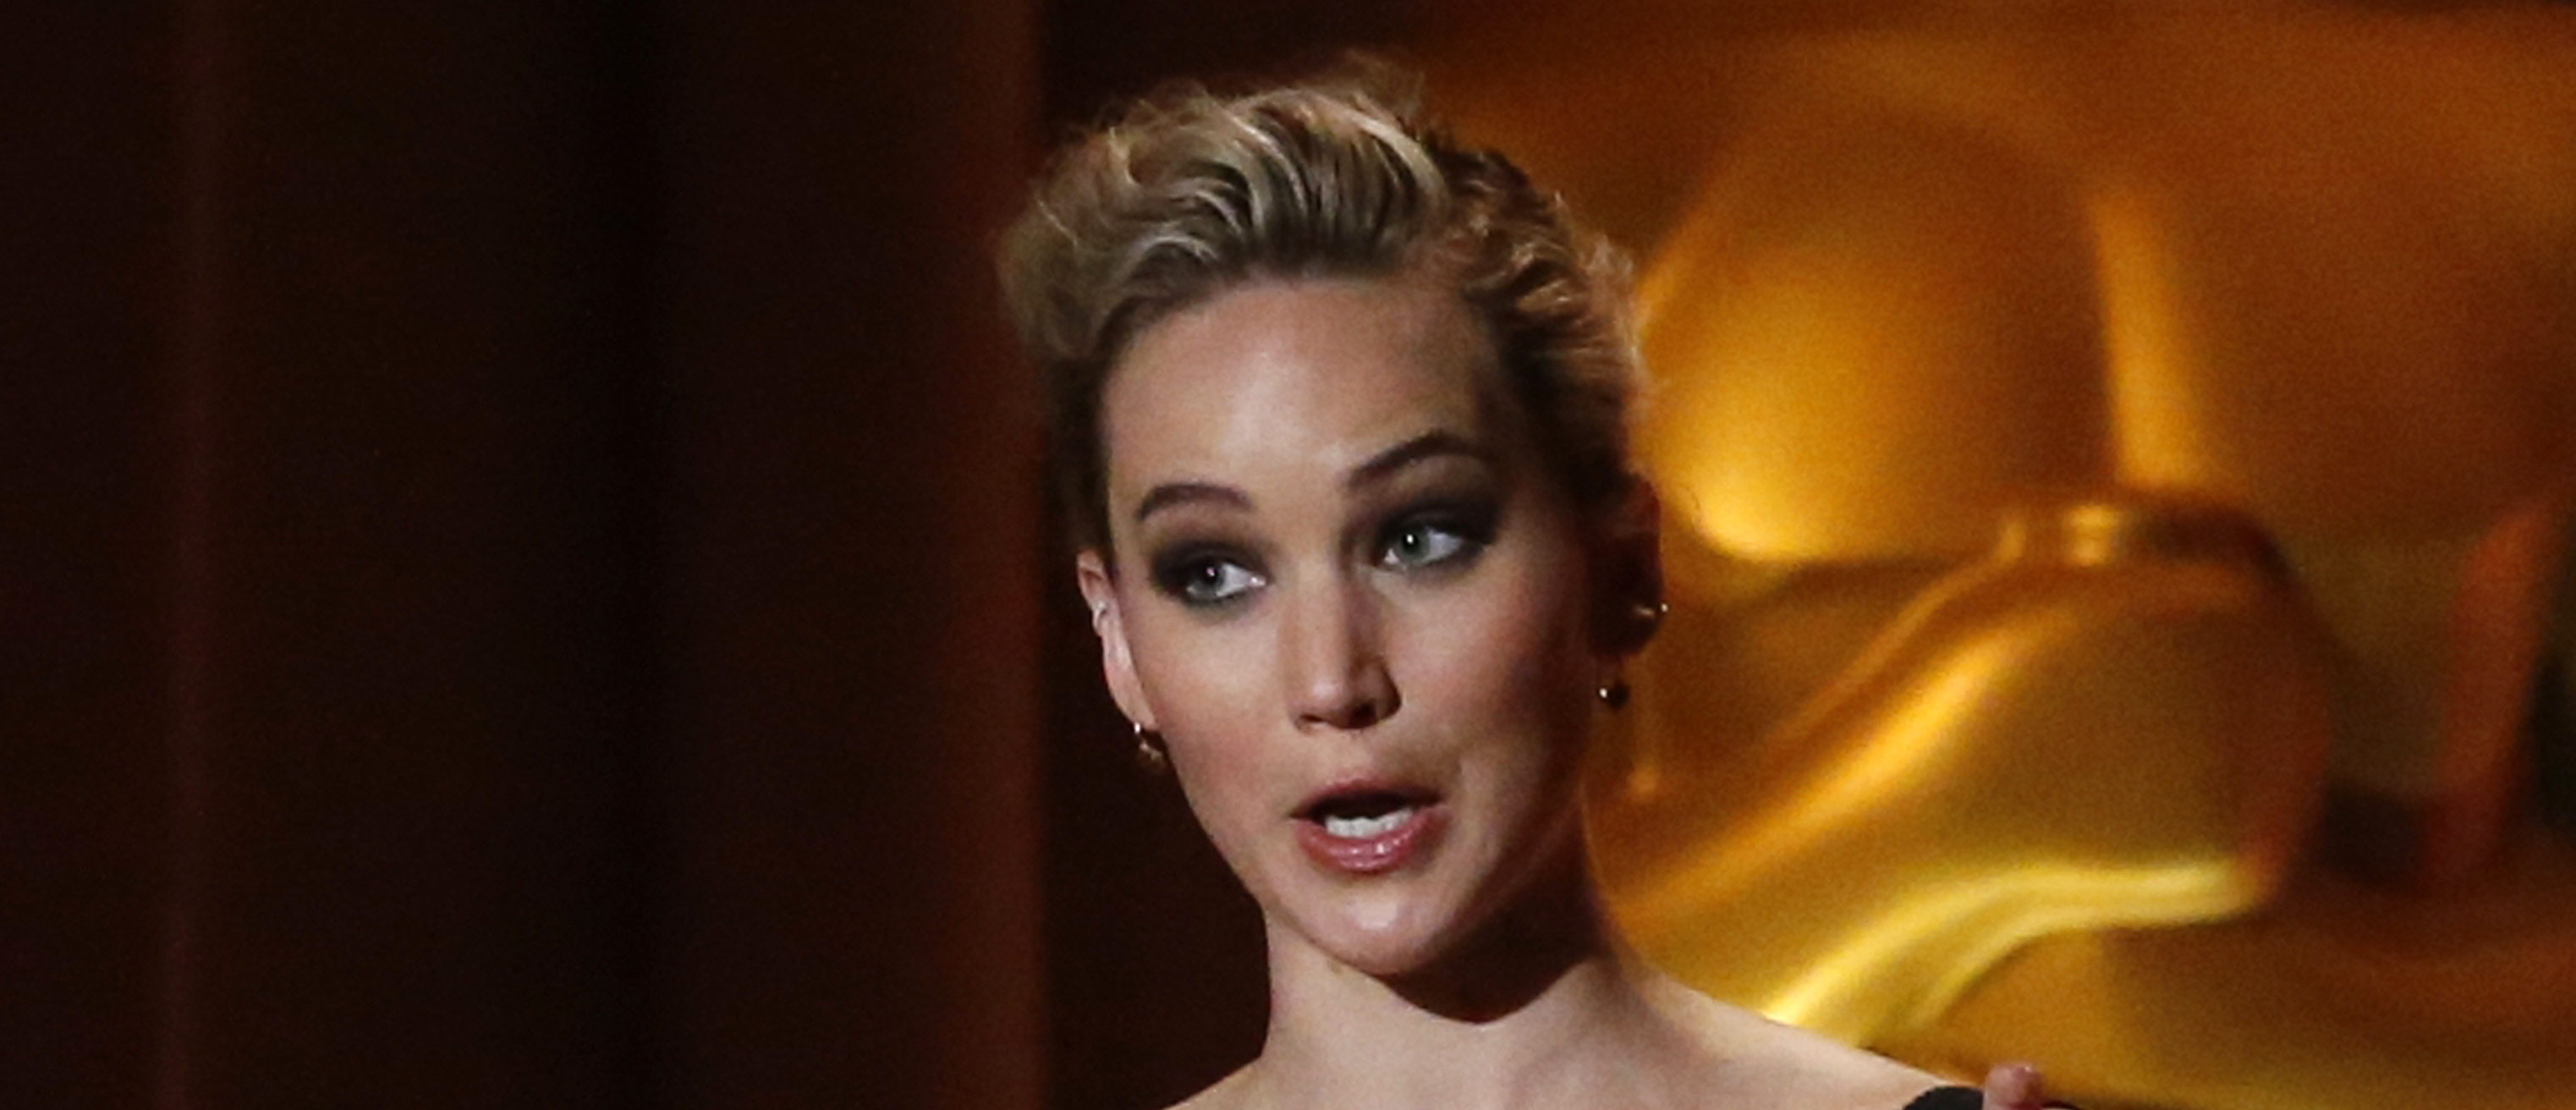 9TH Governors Awards Show Los Angeles, California, U.S., 11/11/2017 - Actress Jennifer Lawrence speaks on stage. REUTERS/Mario Anzuoni - HP1EDBC0JVCGZ